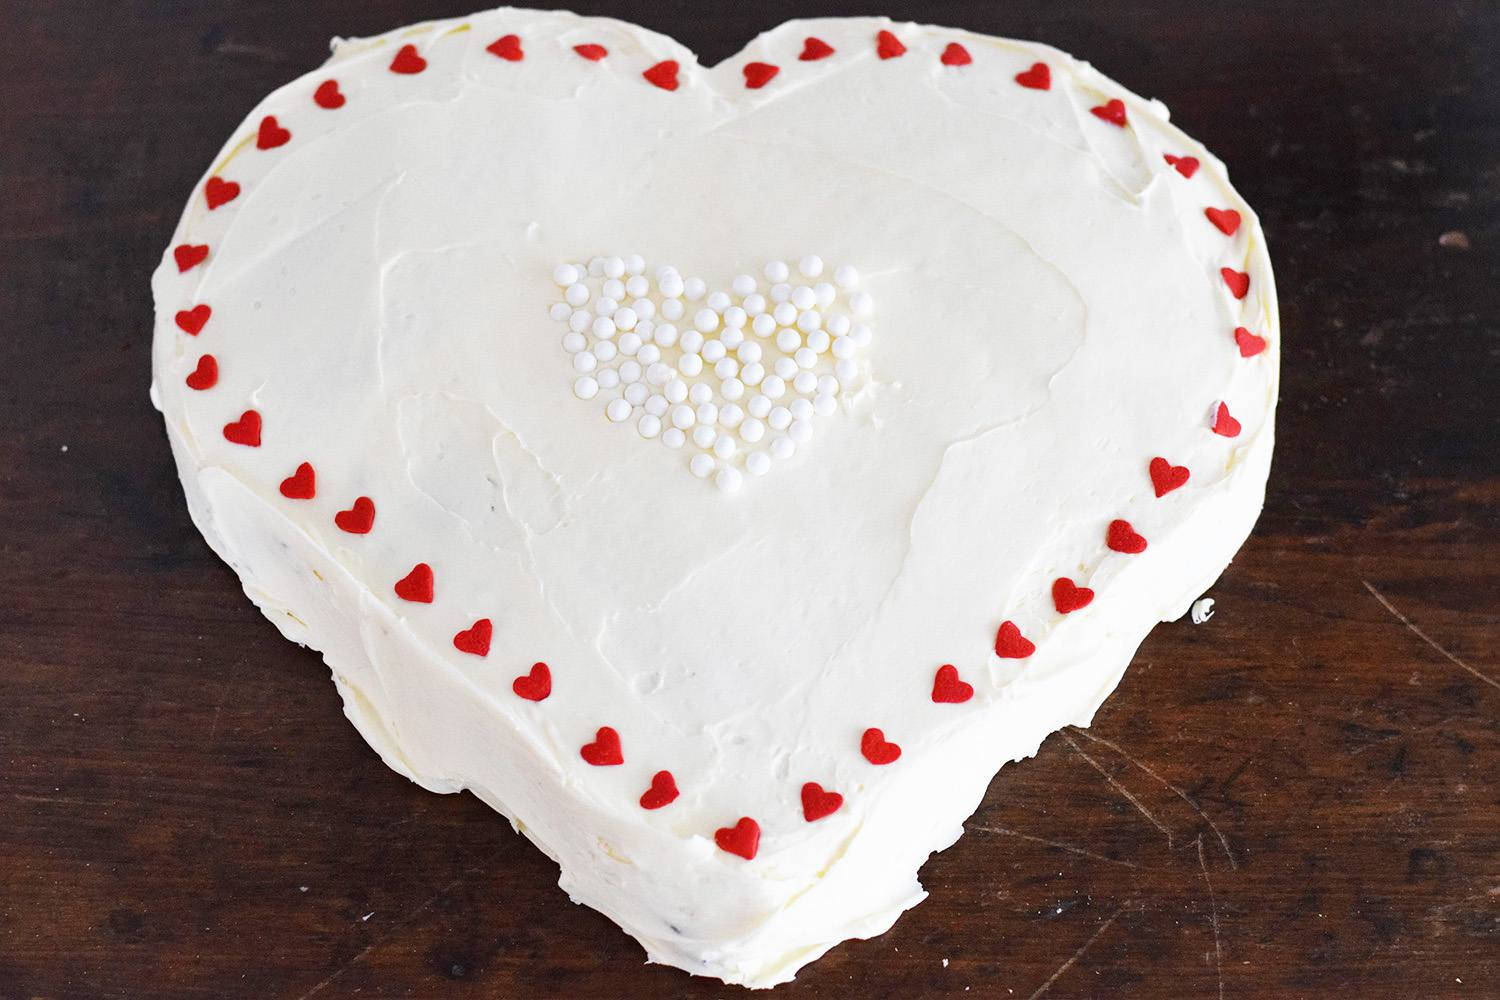 Heart cake with decorations